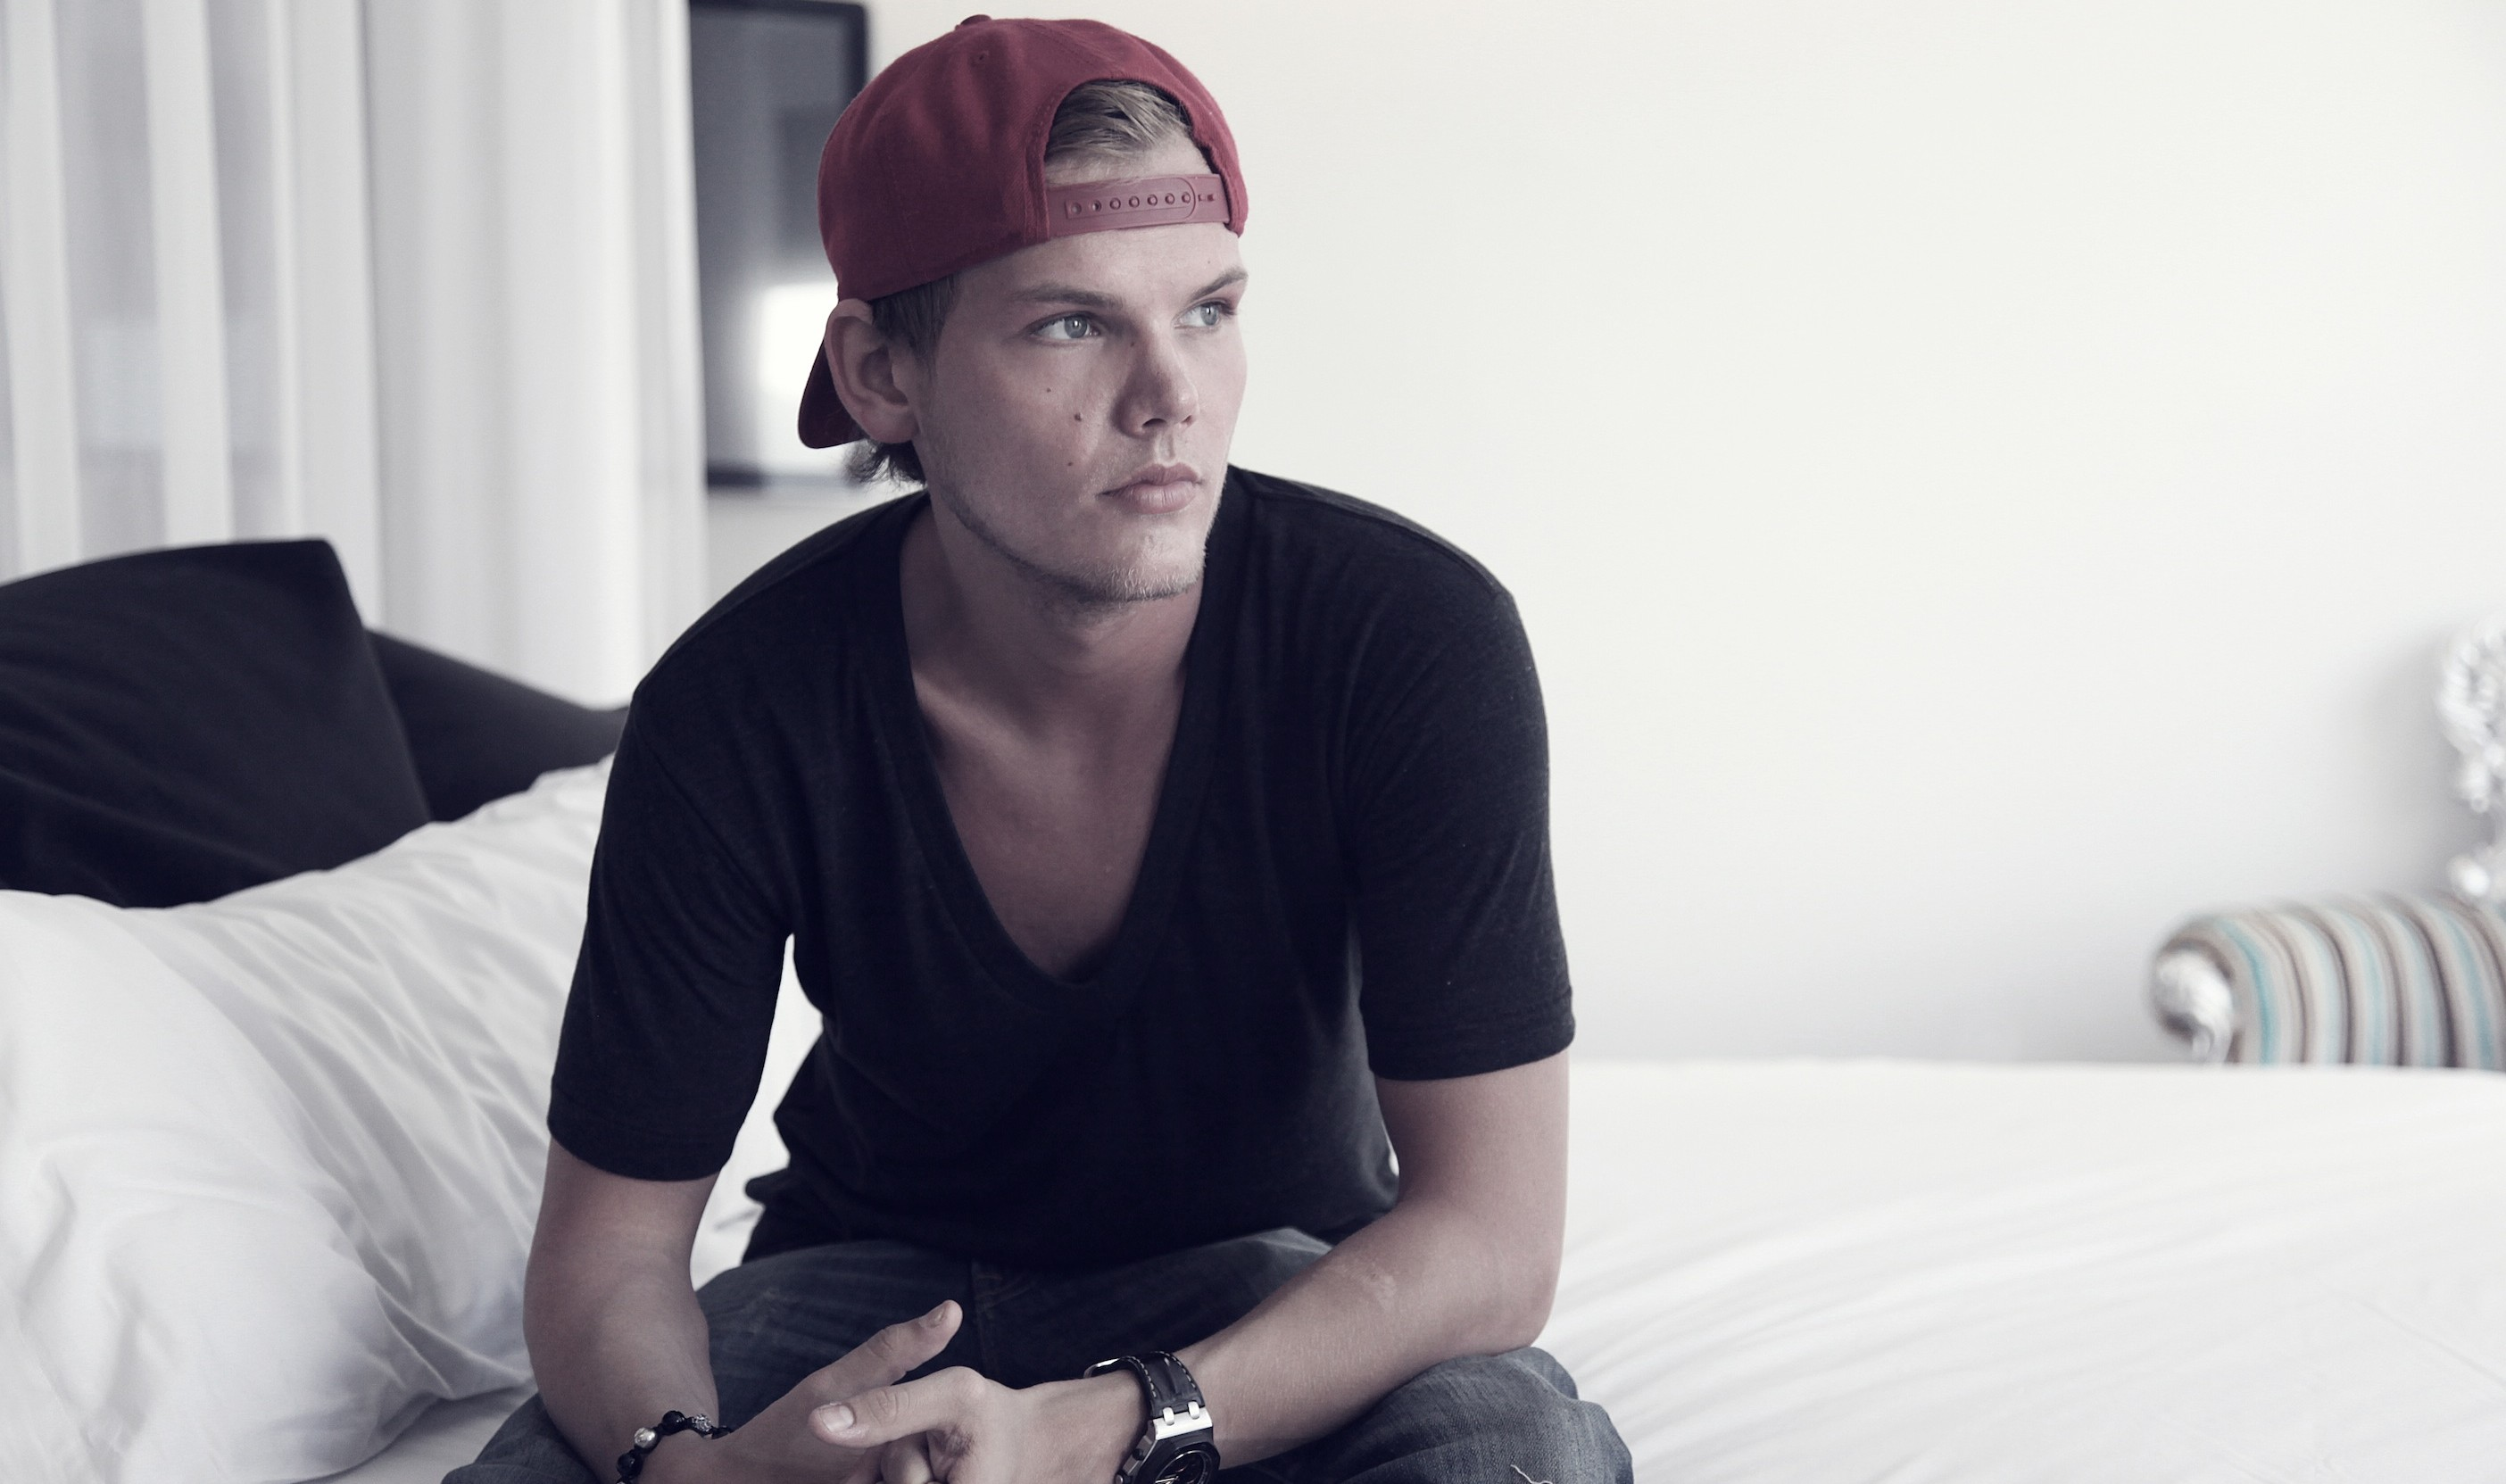 Avicii Announces Retirement From Touring and Shows In A Heartfelt Letter To Fans